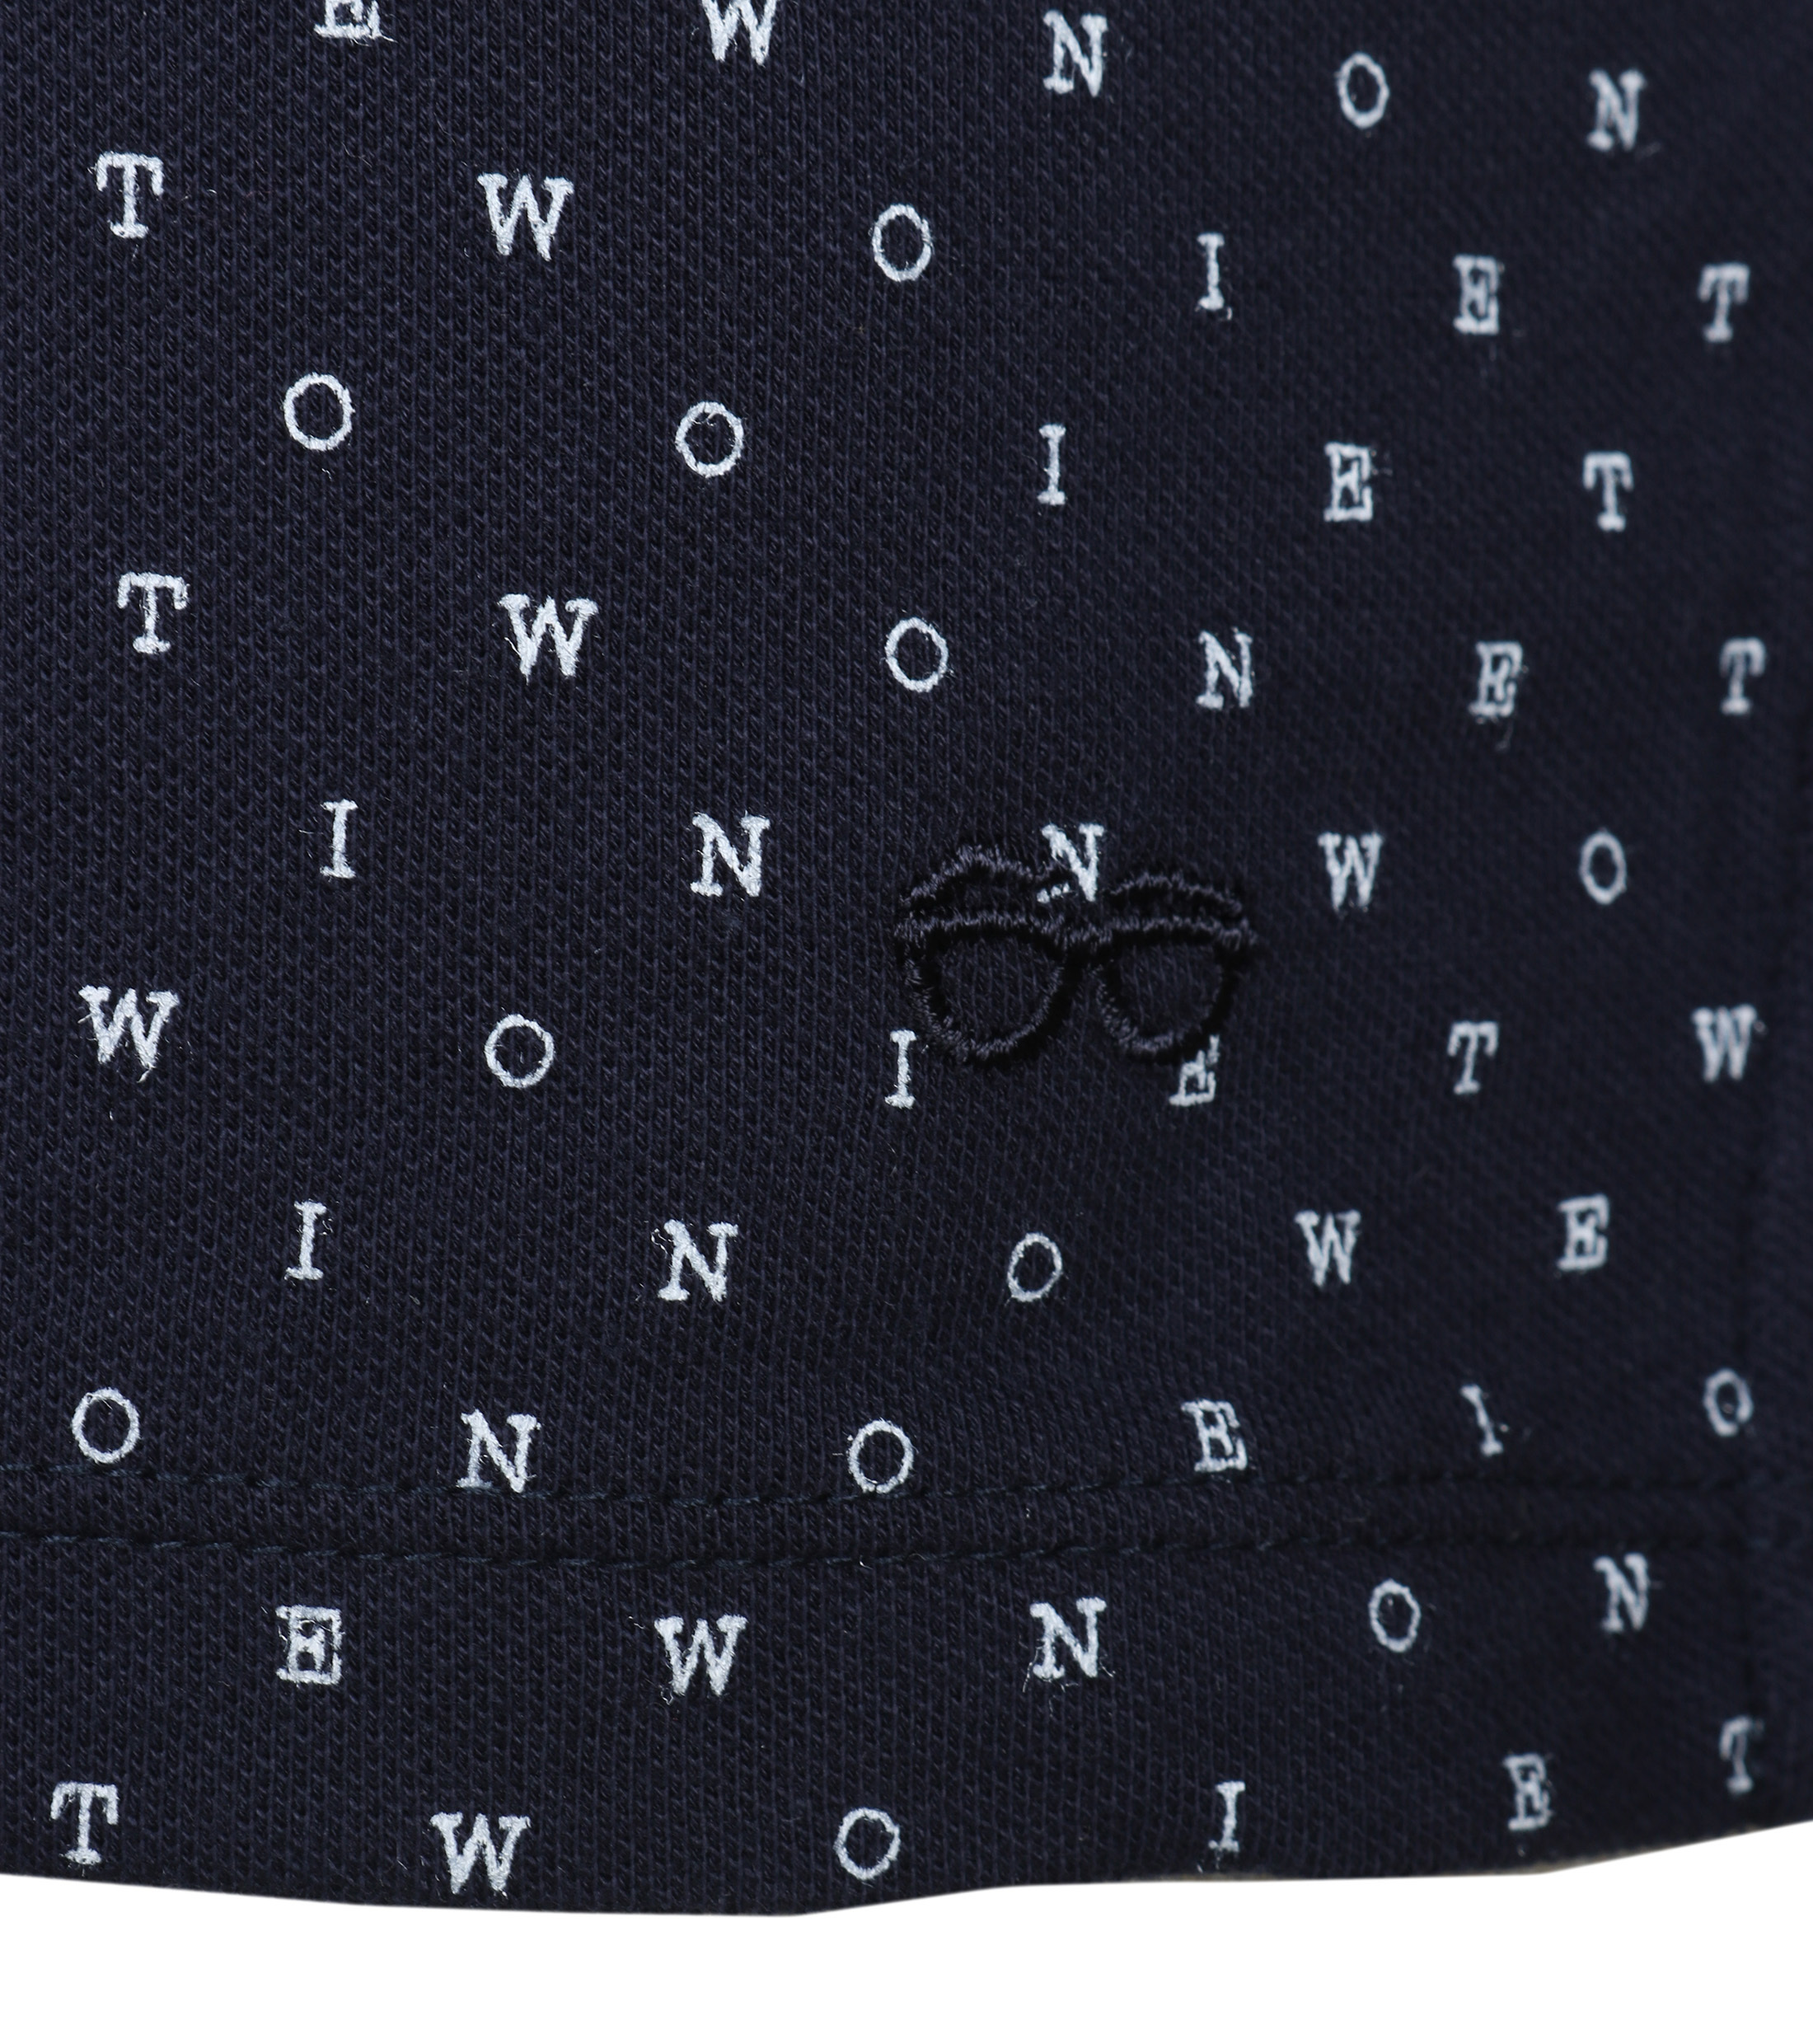 New In Town Polo Navy Tekst foto 2